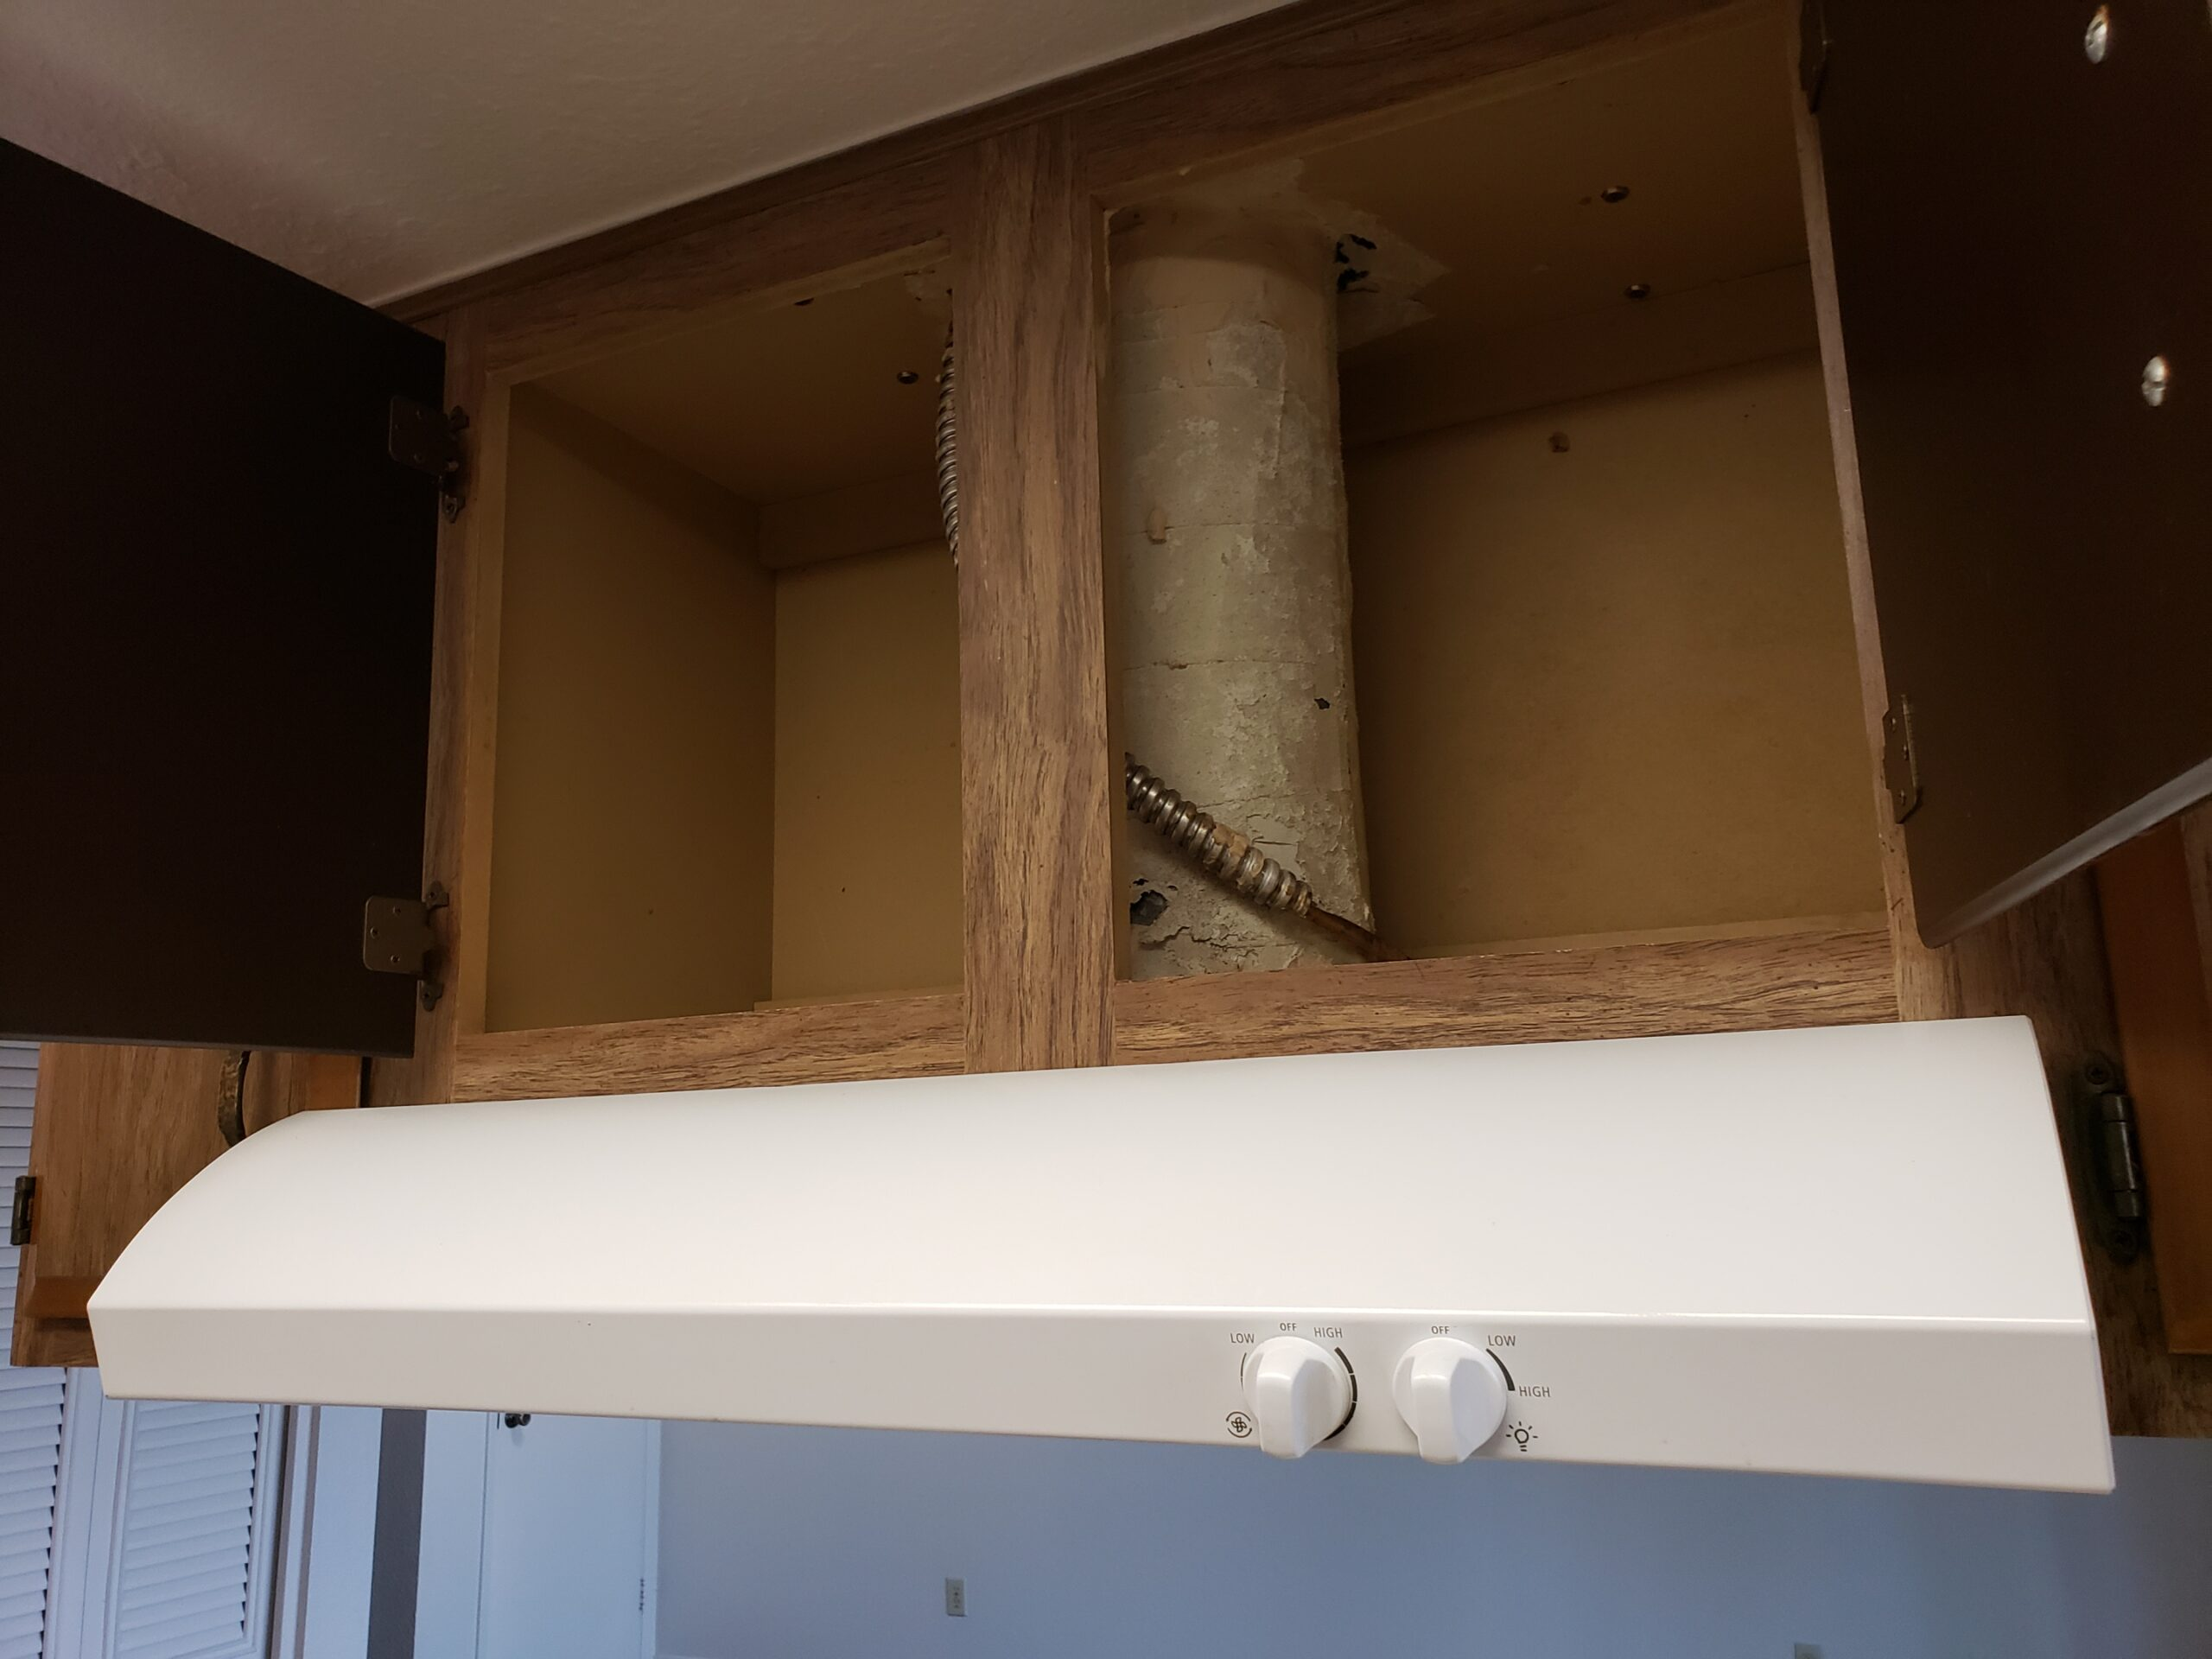 Cooking vent is leaking into cabinet above